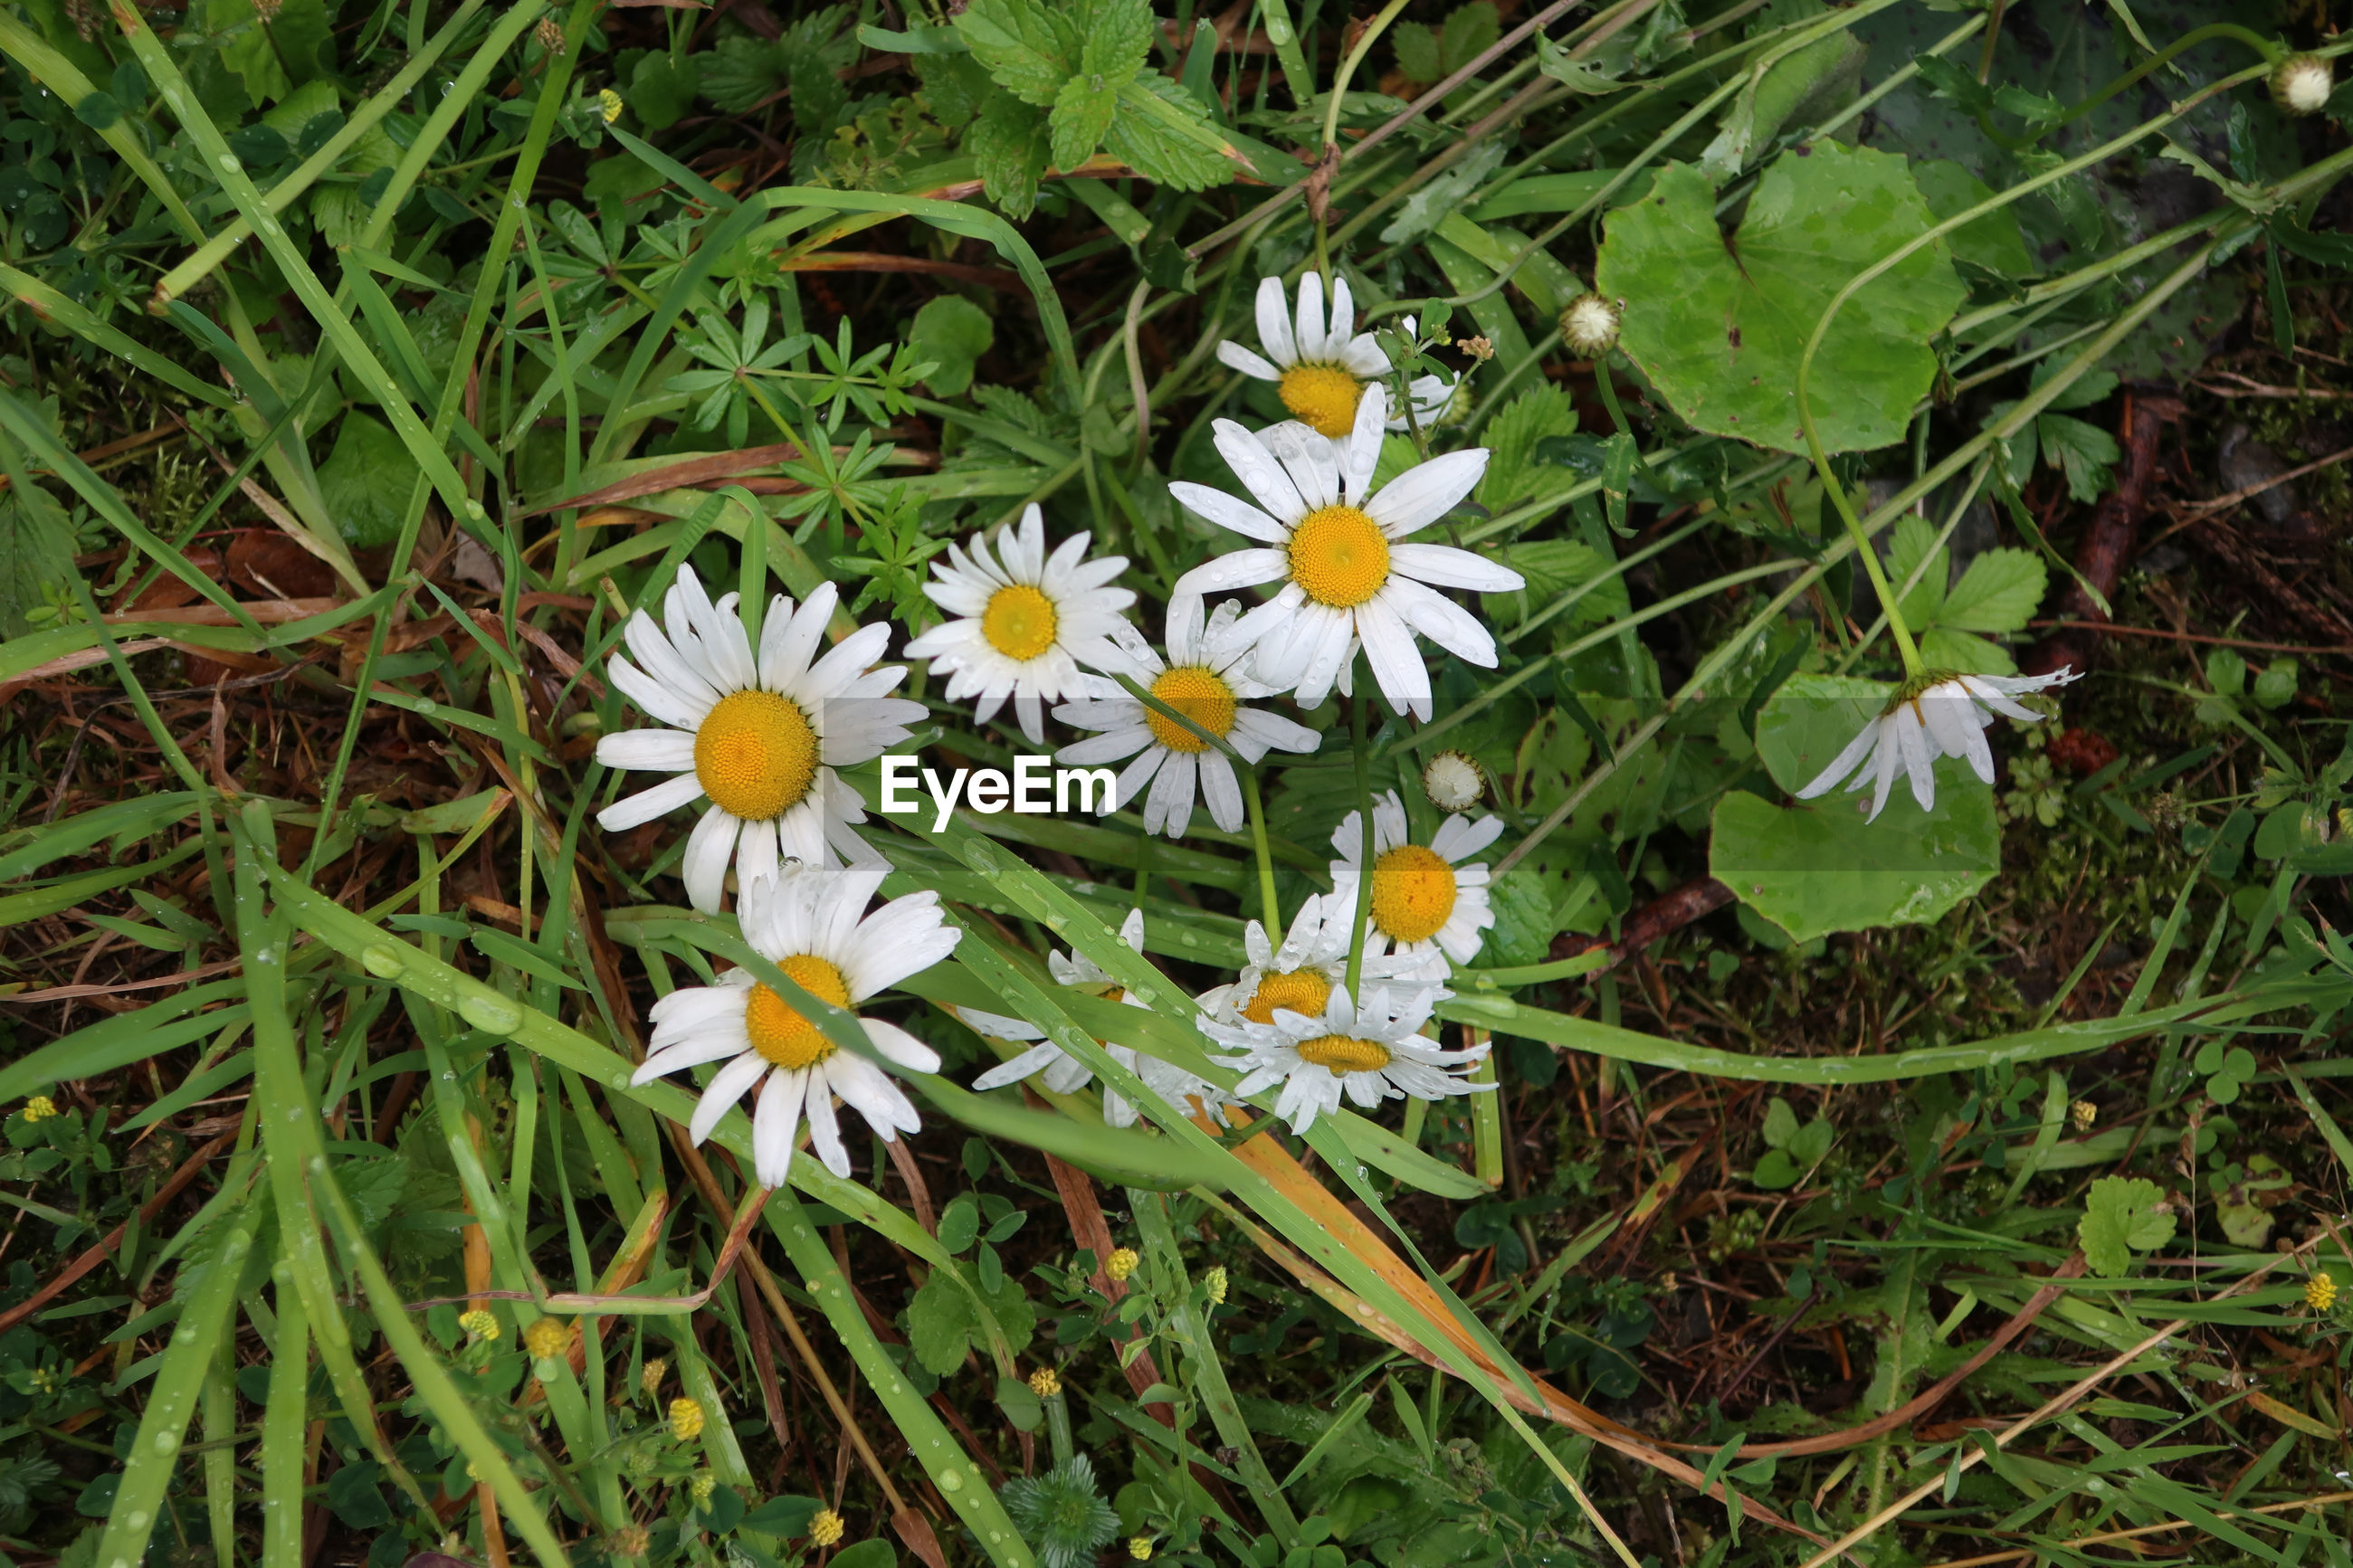 plant, flower, flowering plant, beauty in nature, freshness, growth, fragility, nature, high angle view, petal, wildflower, white, flower head, green, close-up, inflorescence, field, no people, grass, day, land, meadow, plant part, leaf, pollen, outdoors, botany, daisy, yellow, directly above